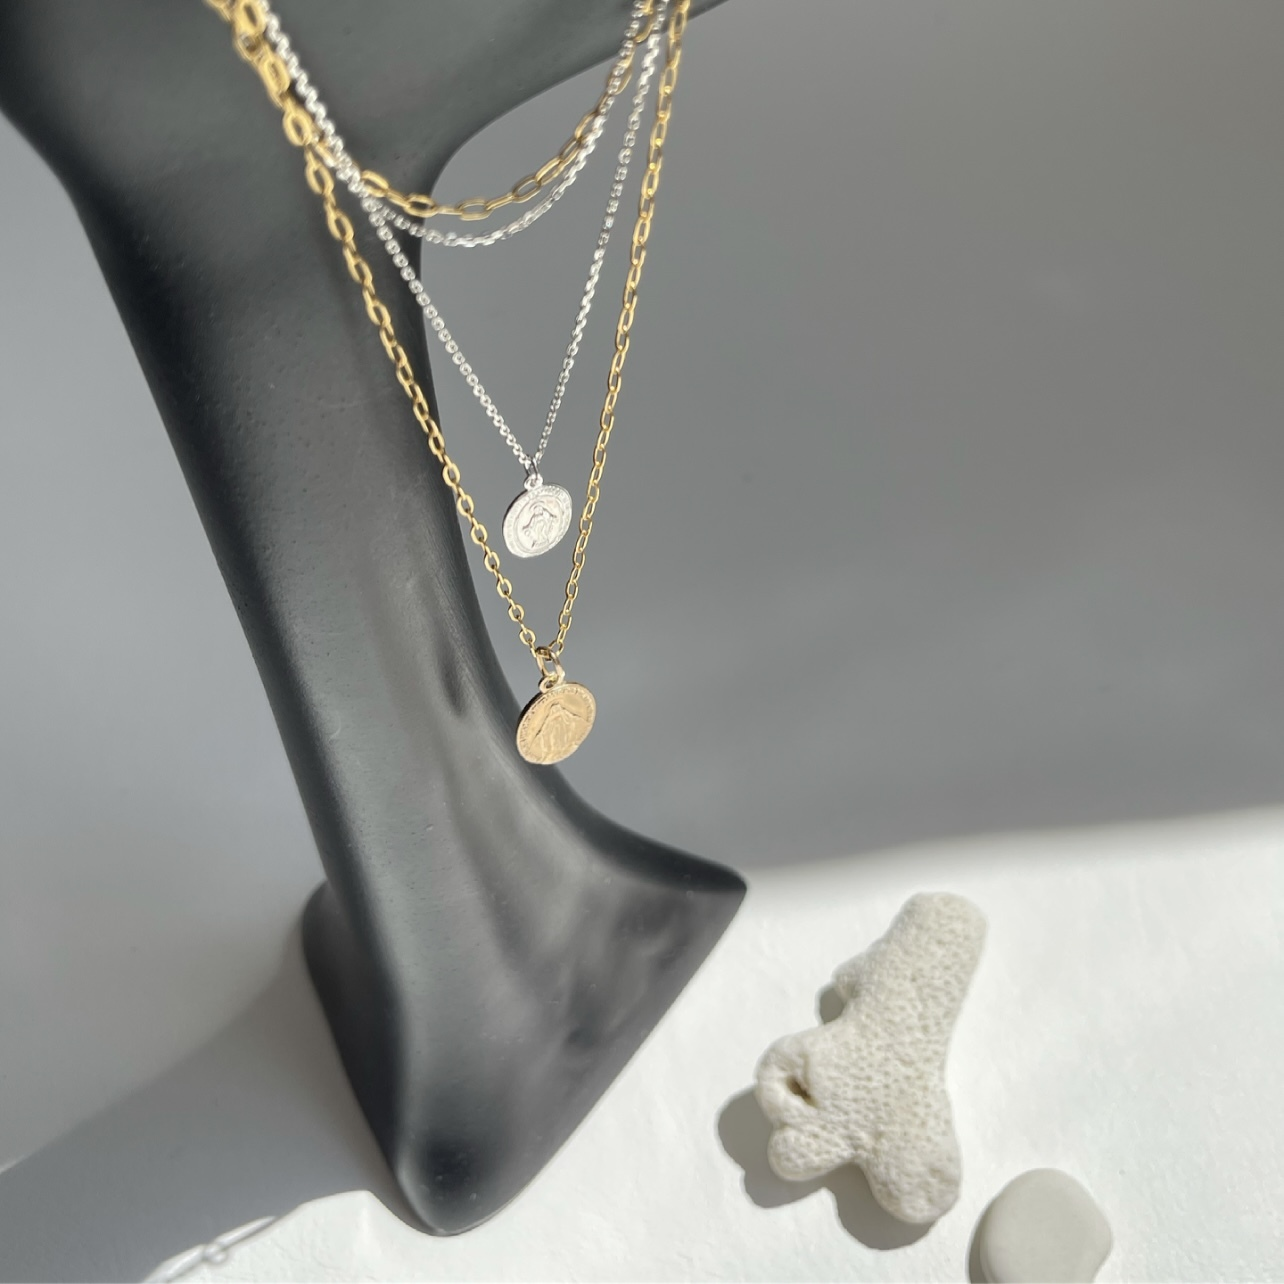 Maria Medai Oval Coin x Silver  / ネックレス